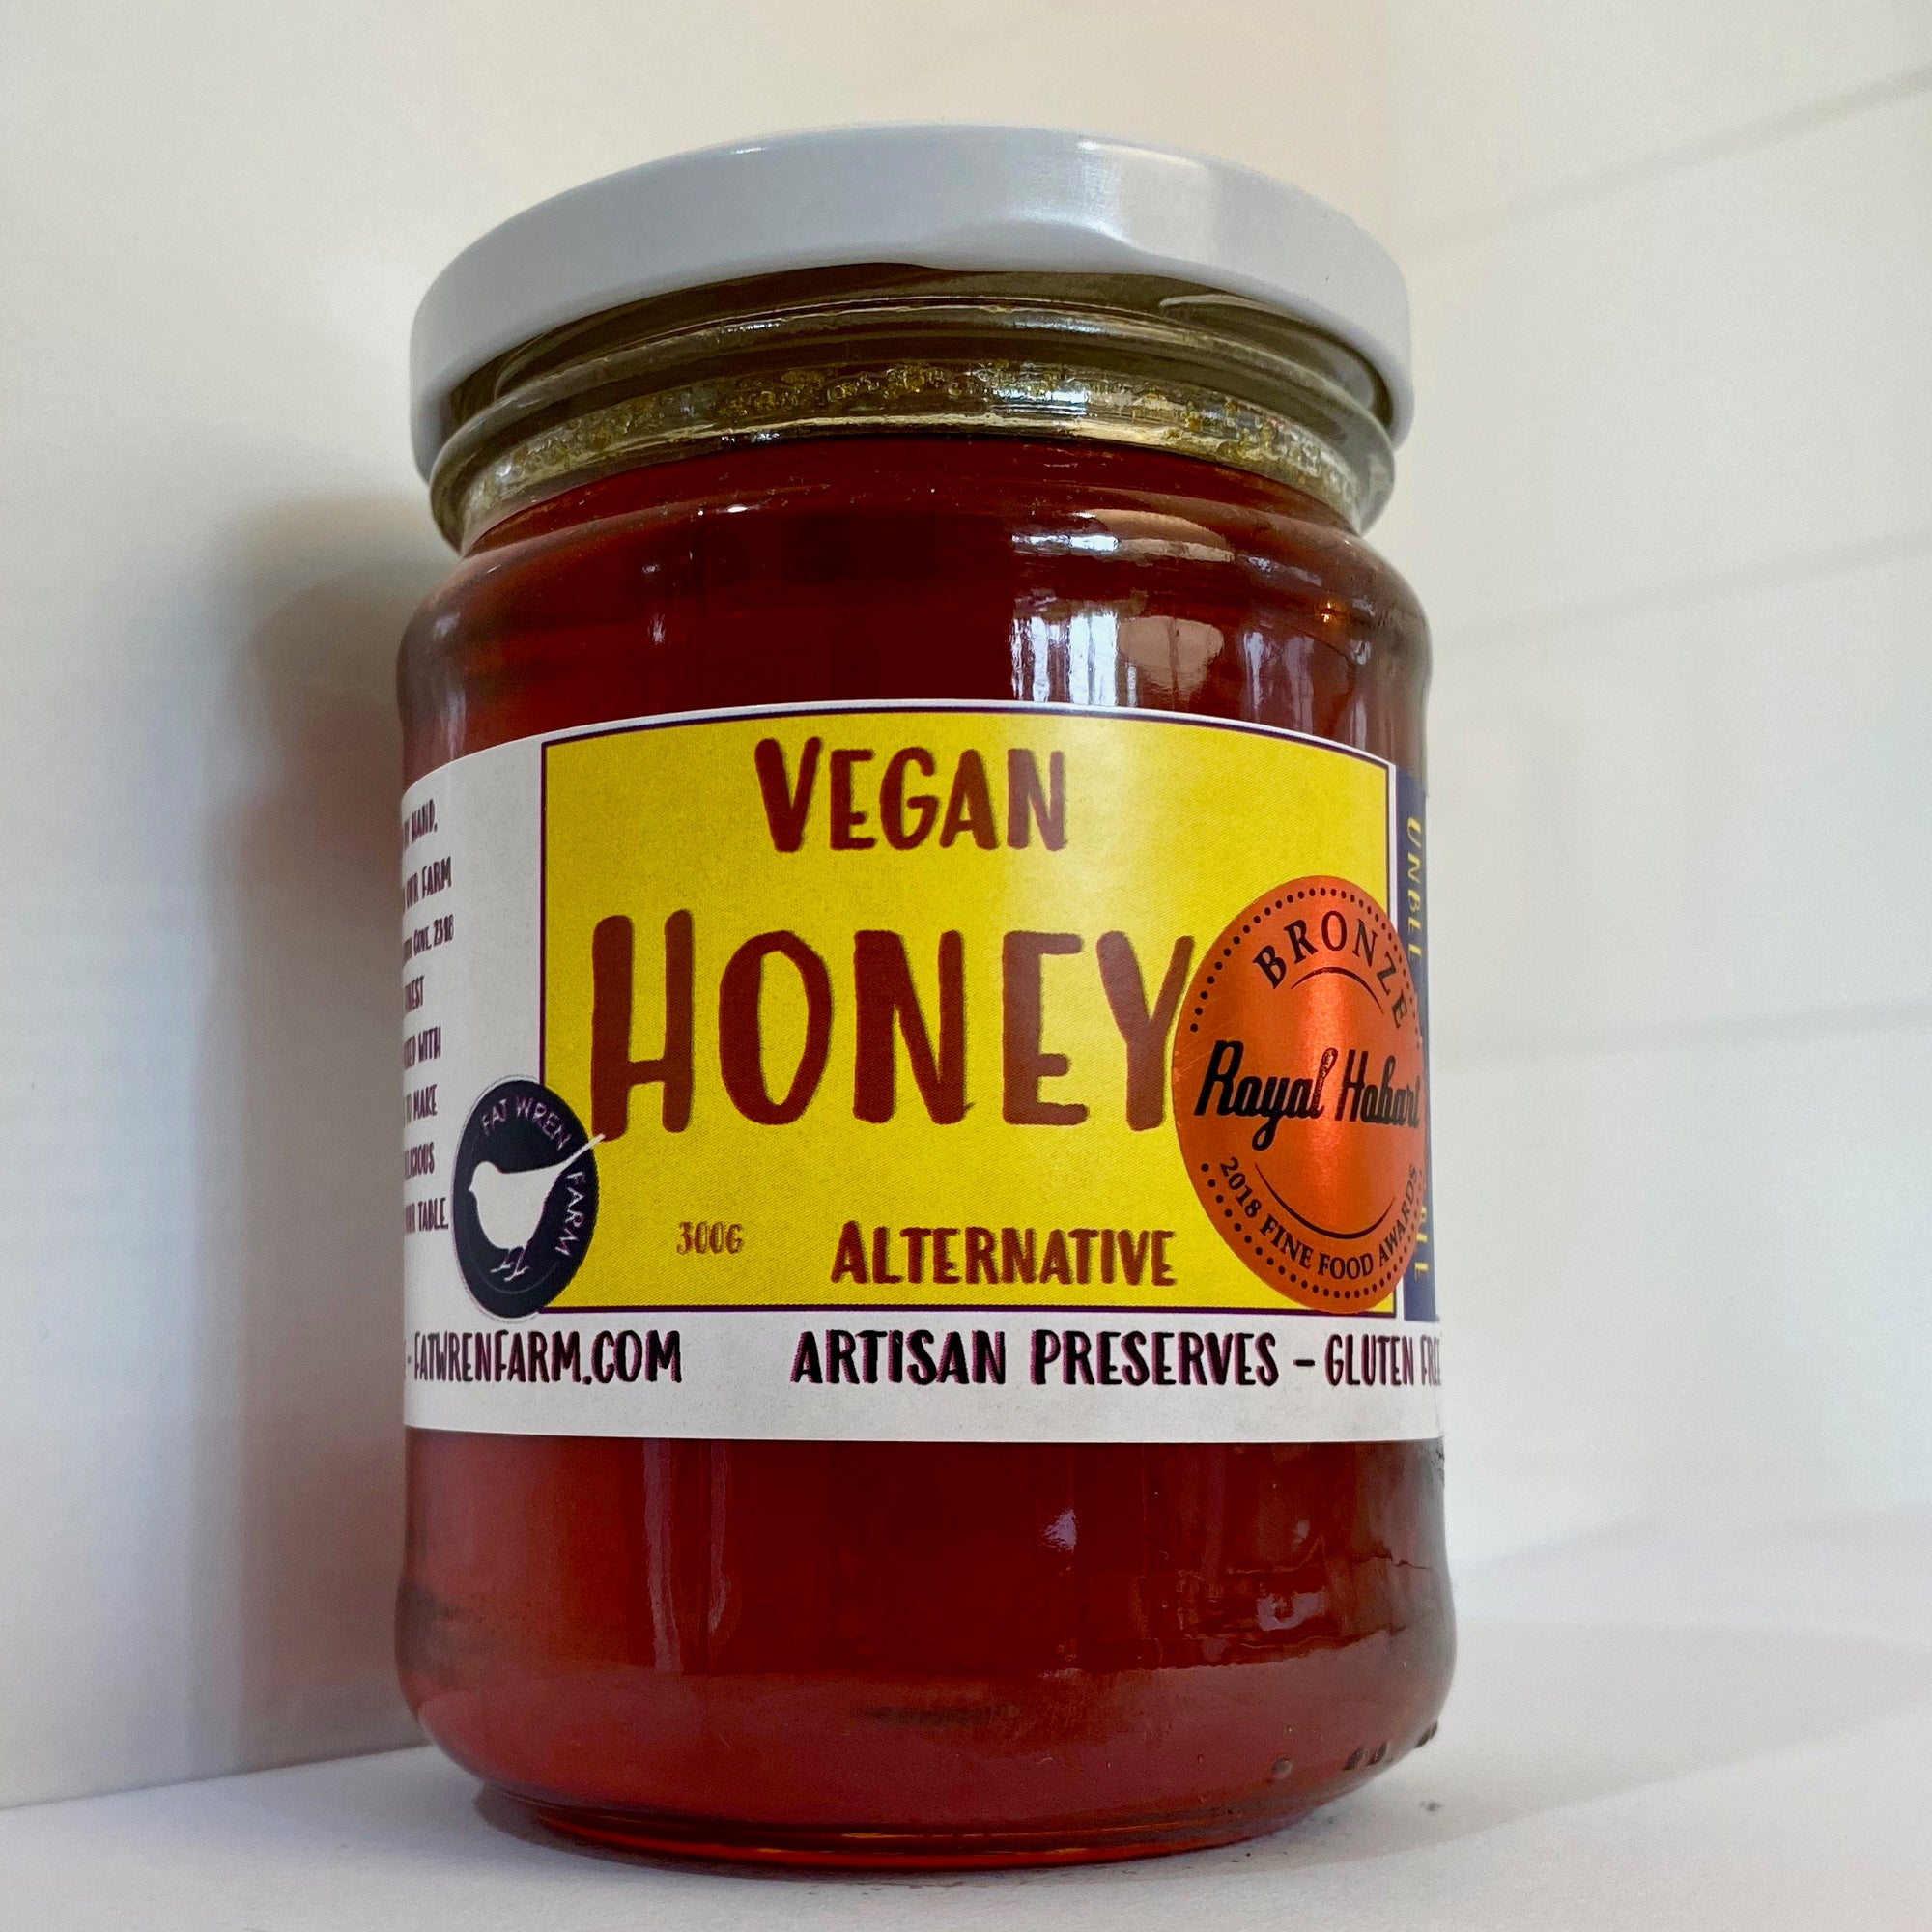 Vegan Honey Alternative